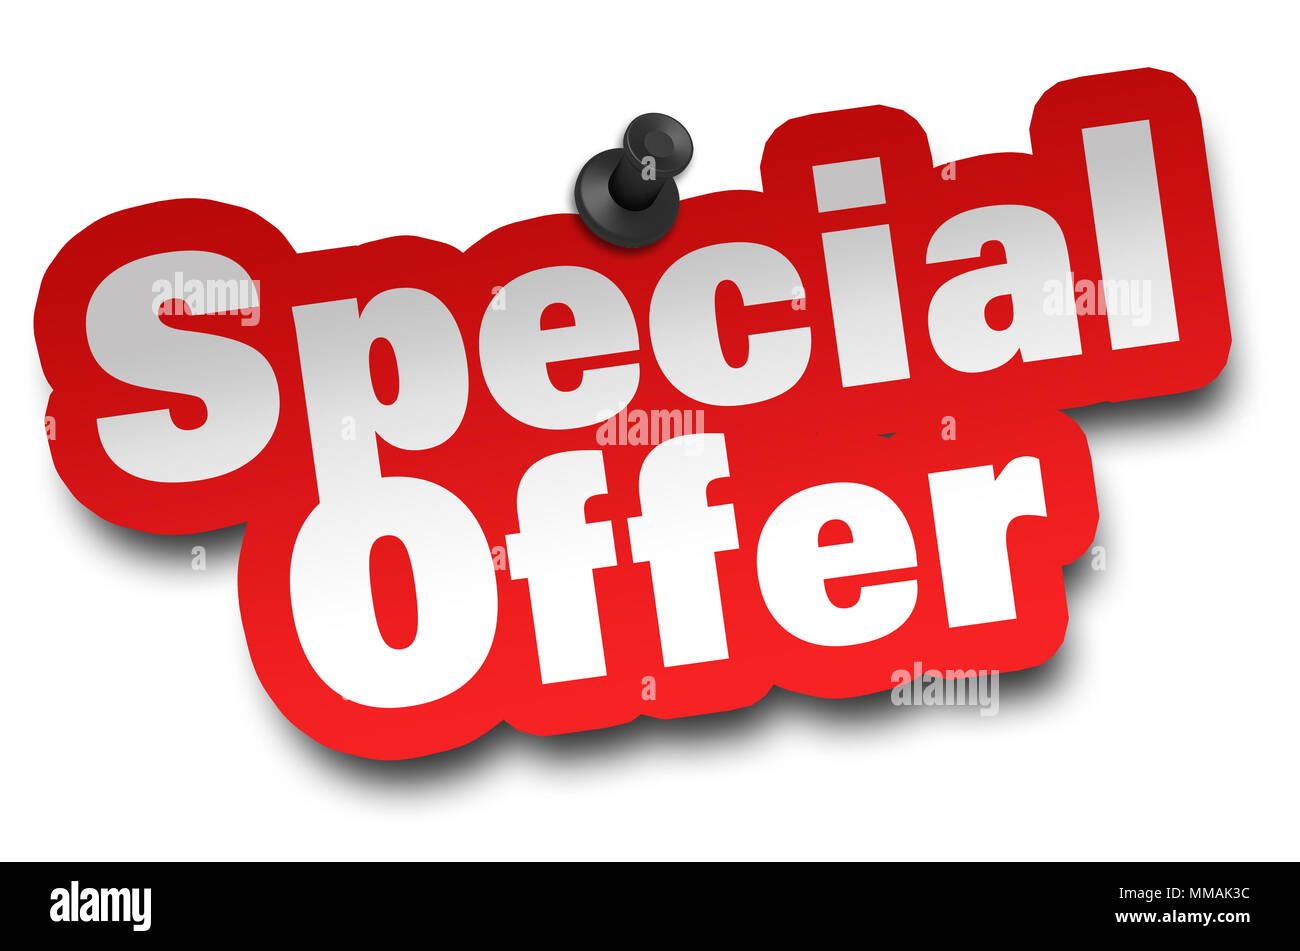 Special Offer Concept 3d Illustration Isolated Stock Photo Alamy